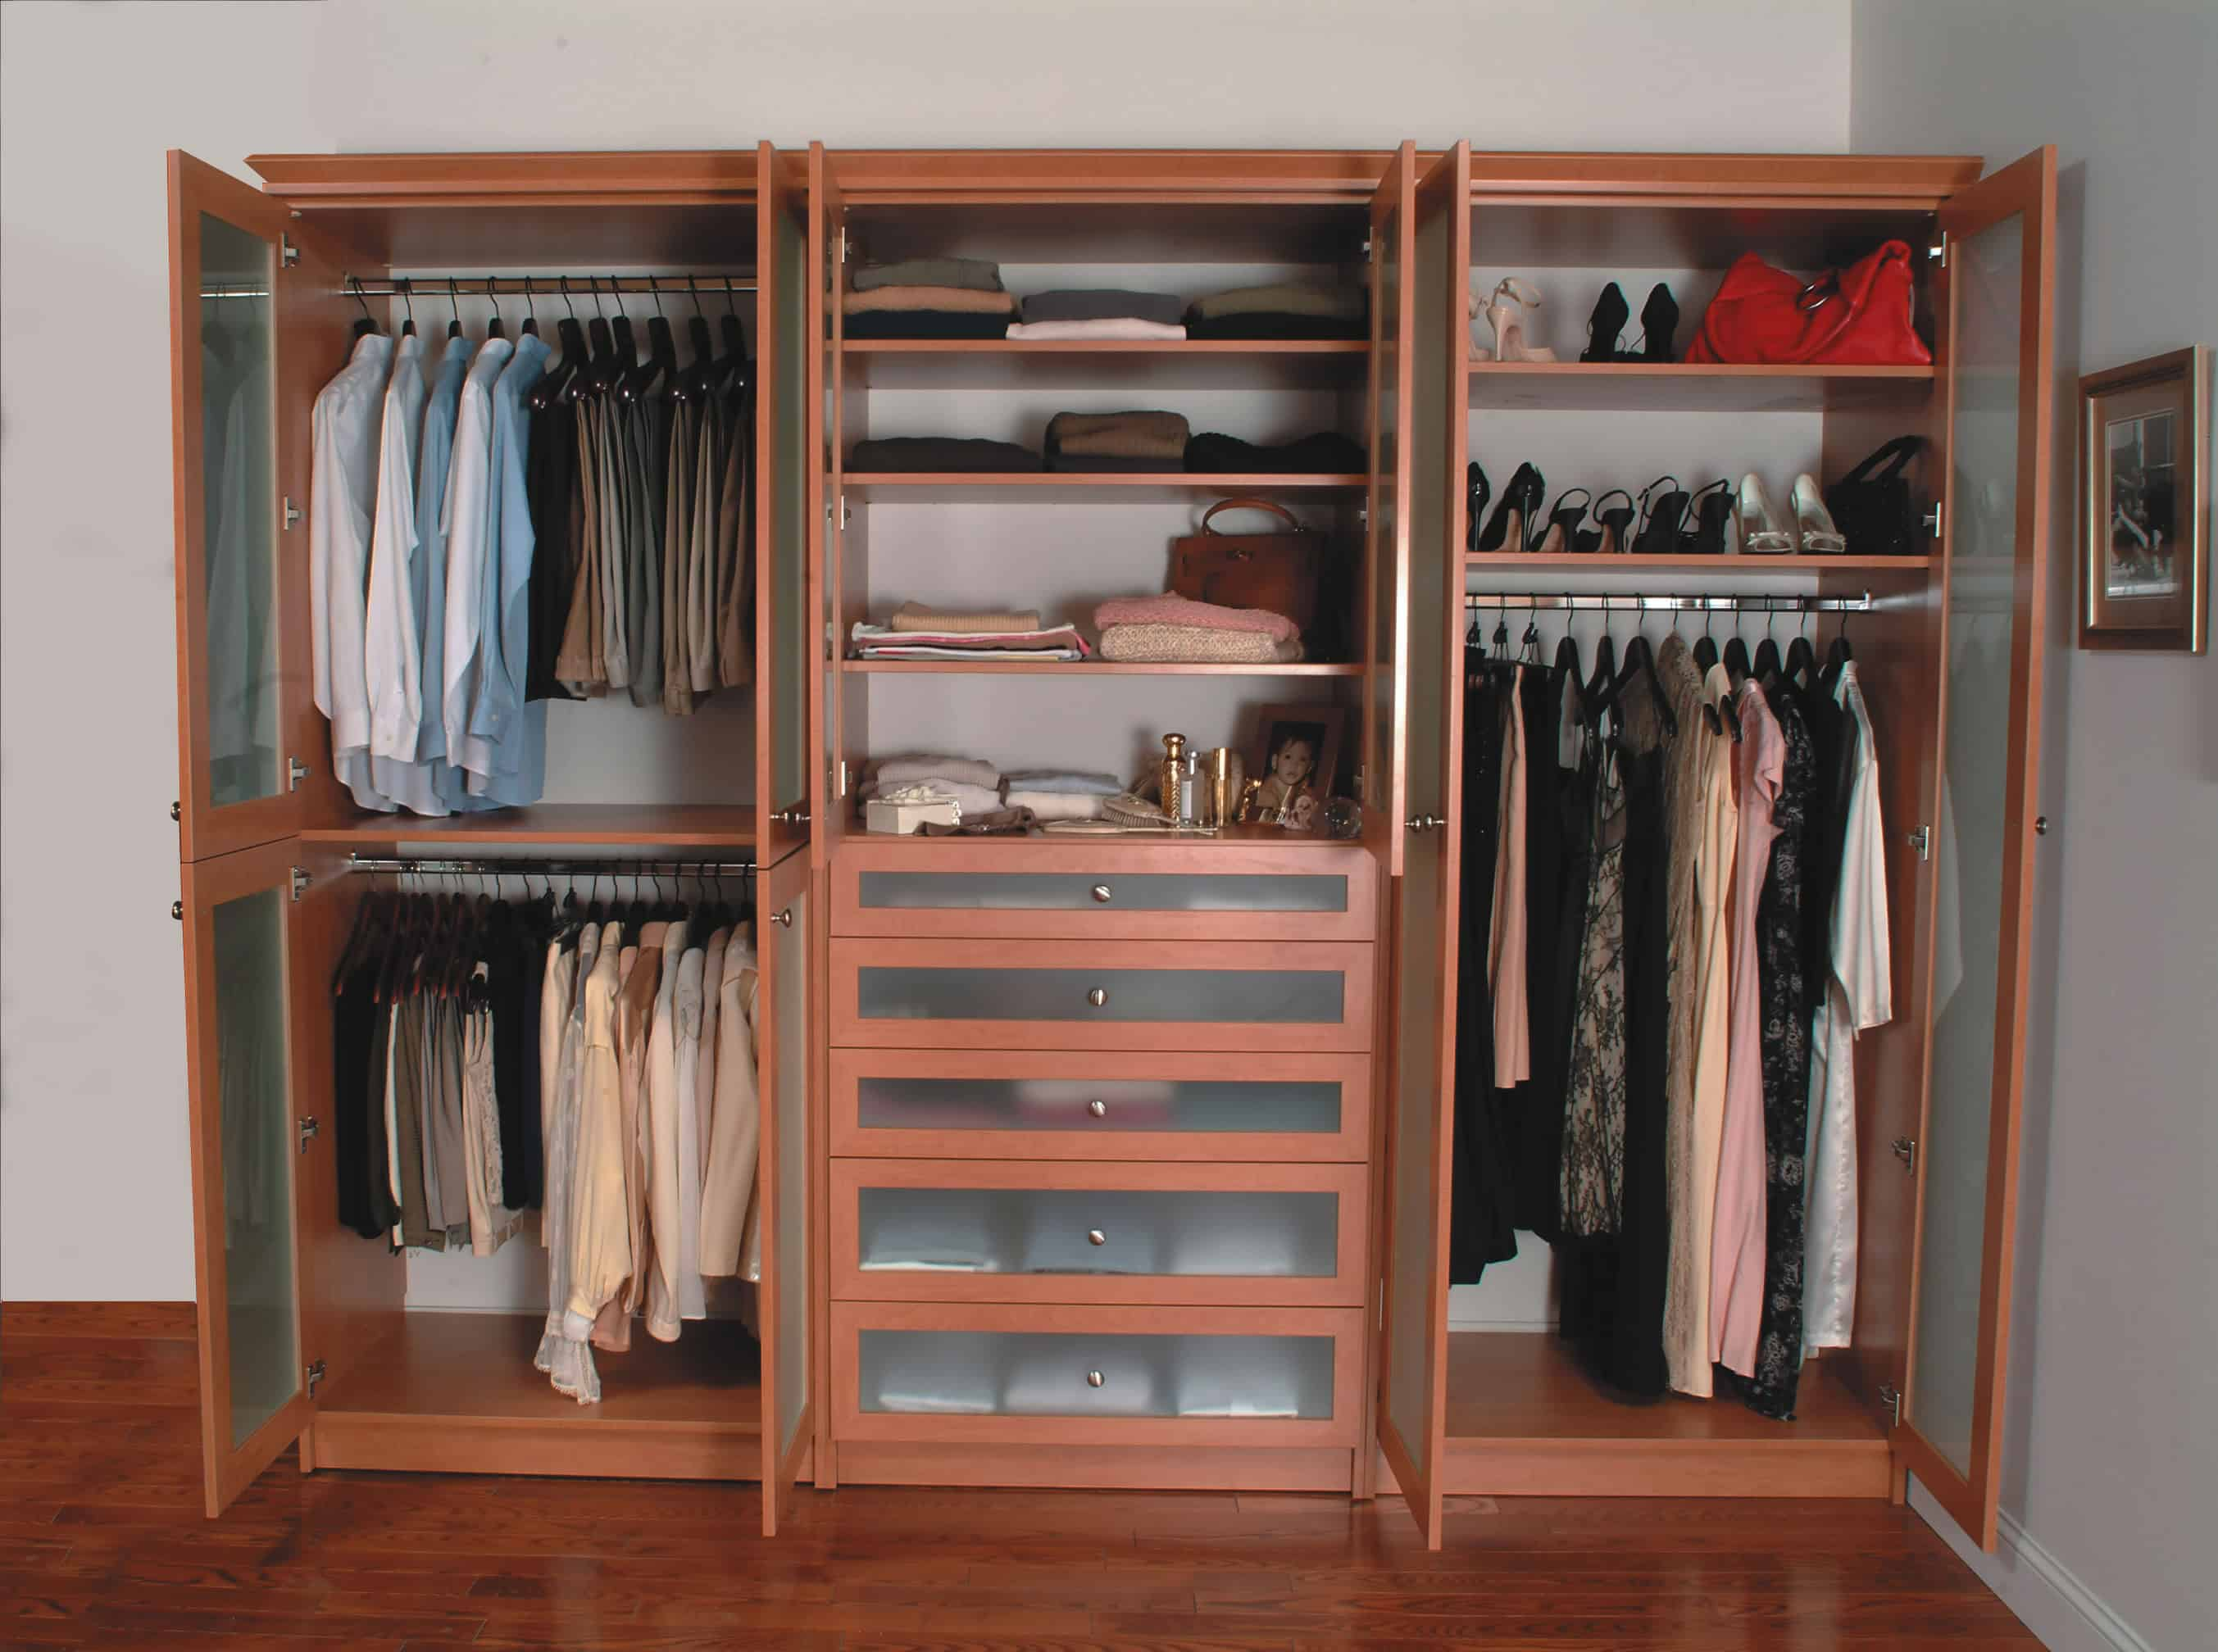 This modern women's clothing features beige finished cabinetry and reddish hardwood flooring along with white walls.